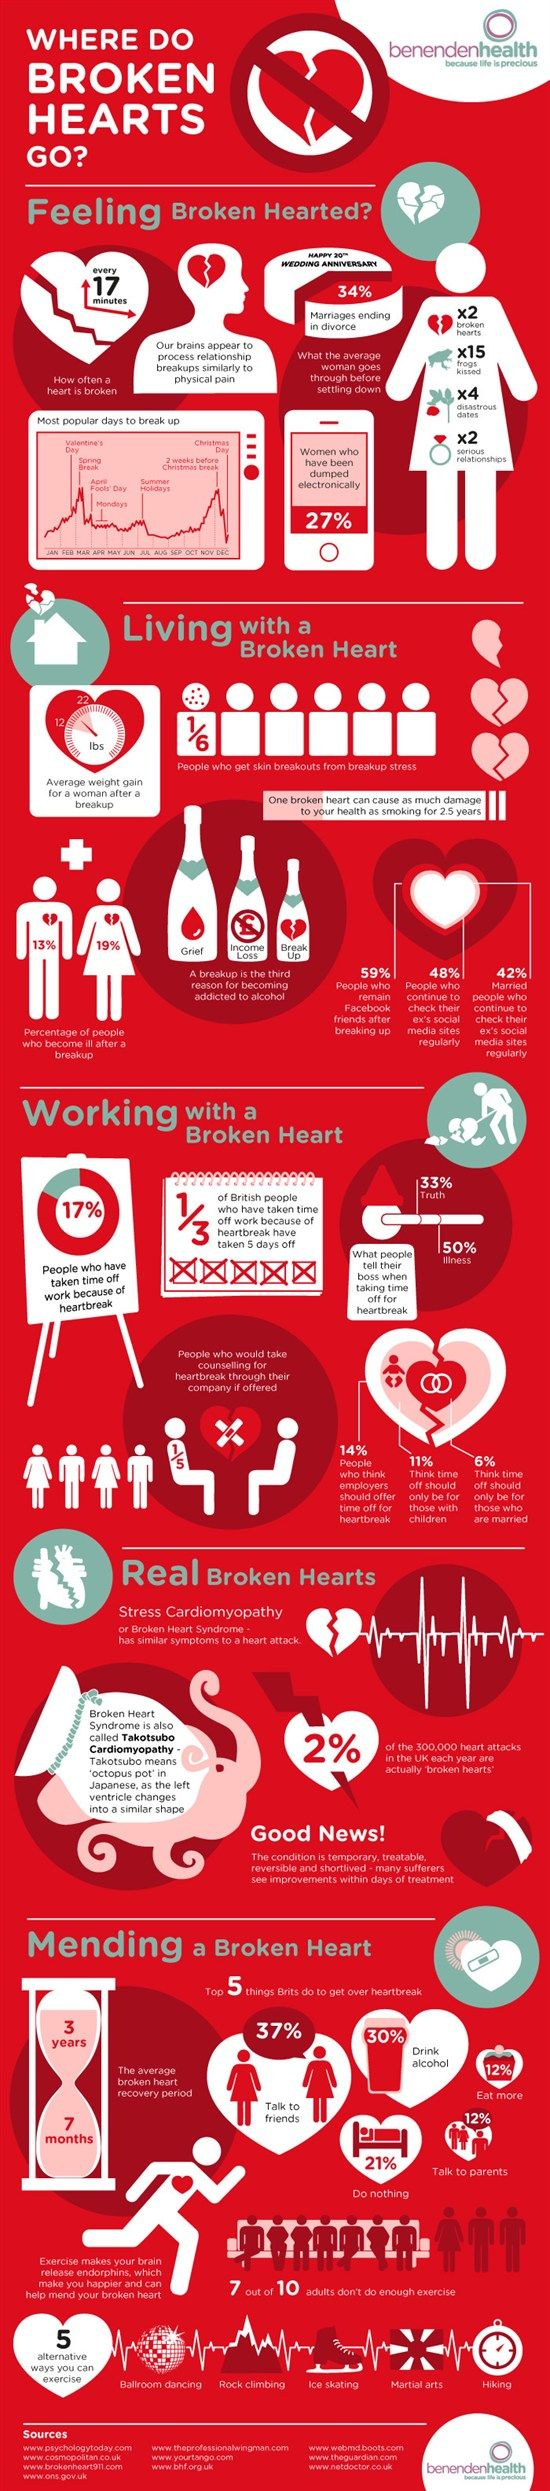 The infographic explains what kind of damage a heartbreak does to your health and how to get through the mental breakdown.